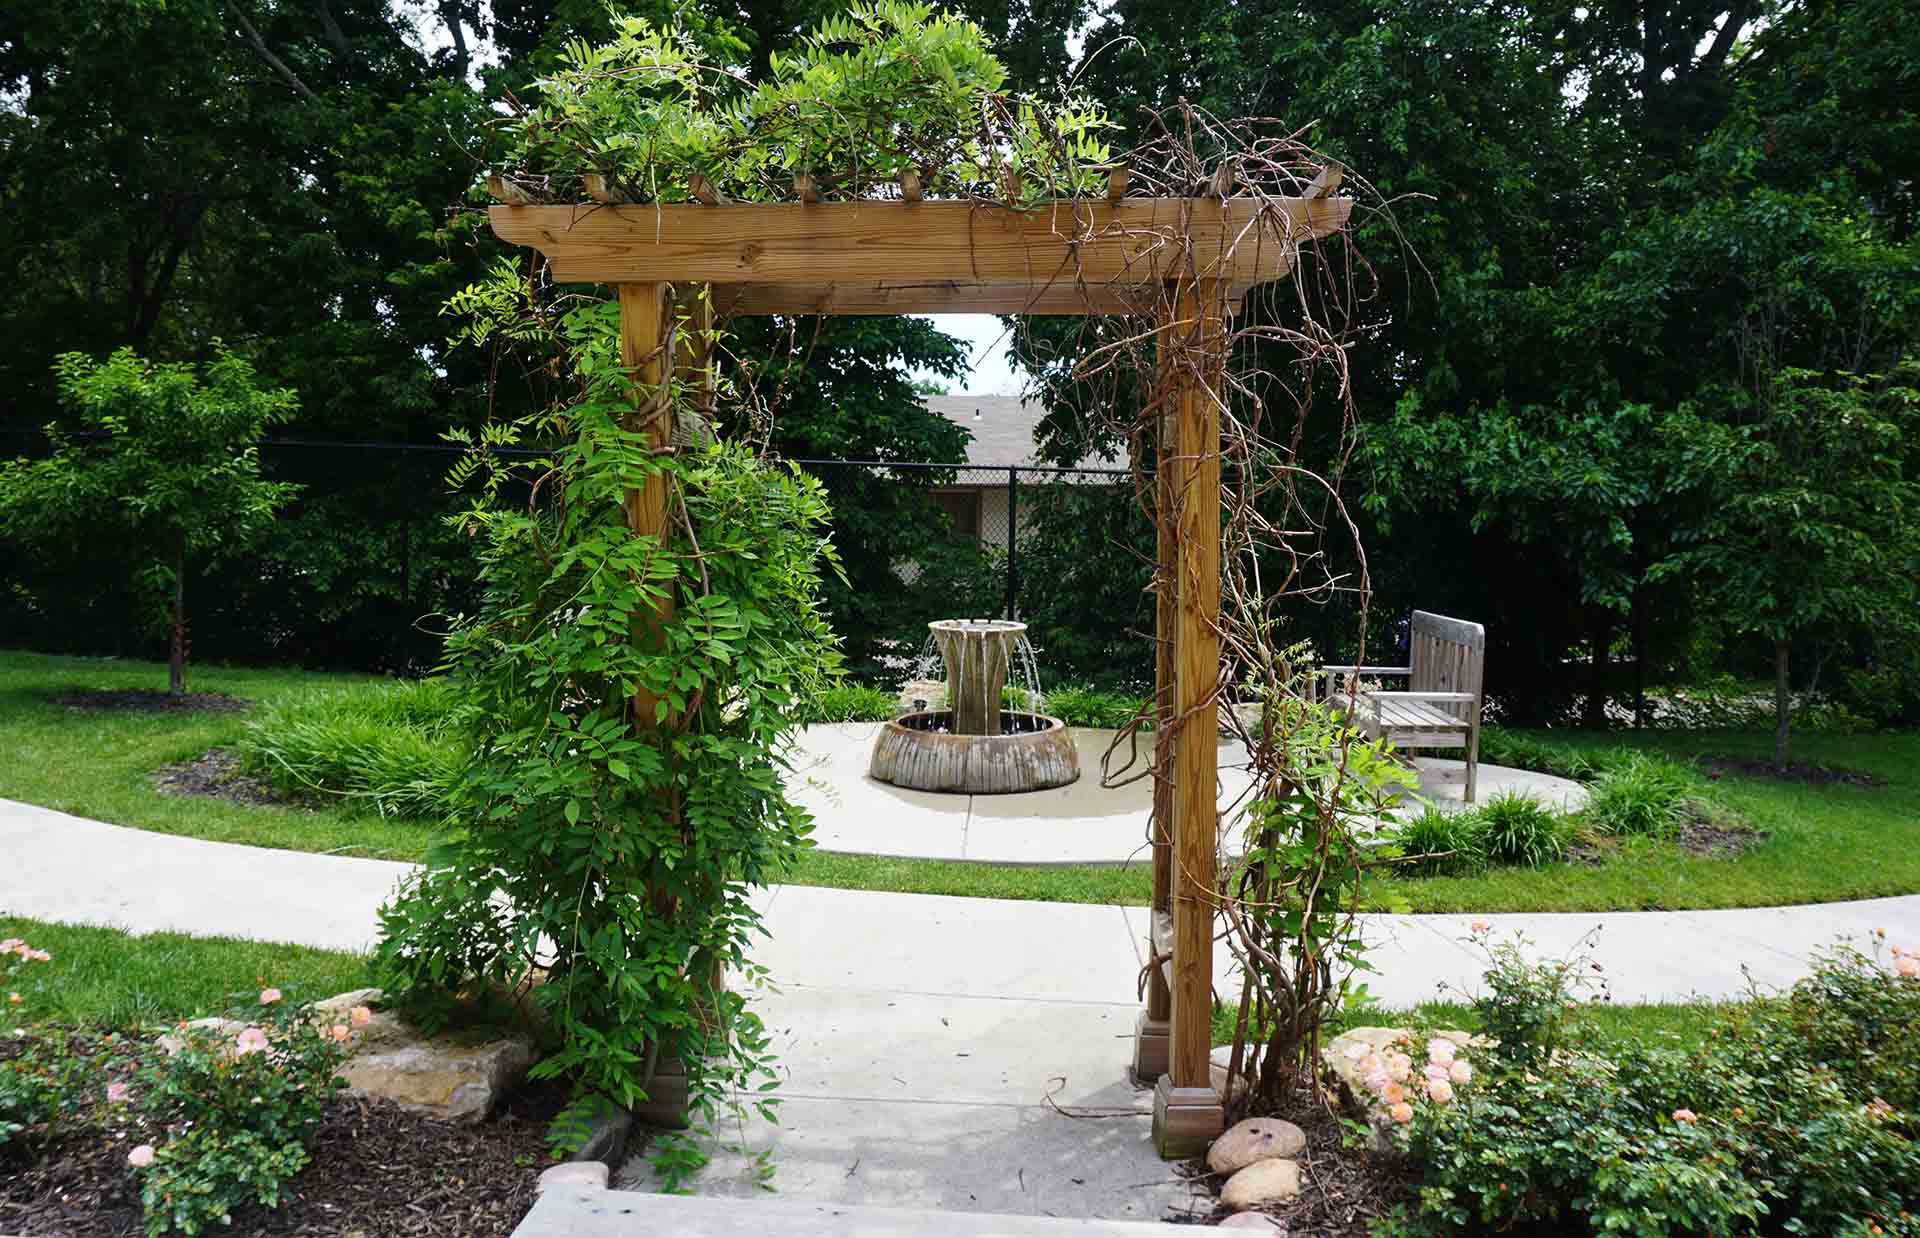 Entryway to garden covered in vines